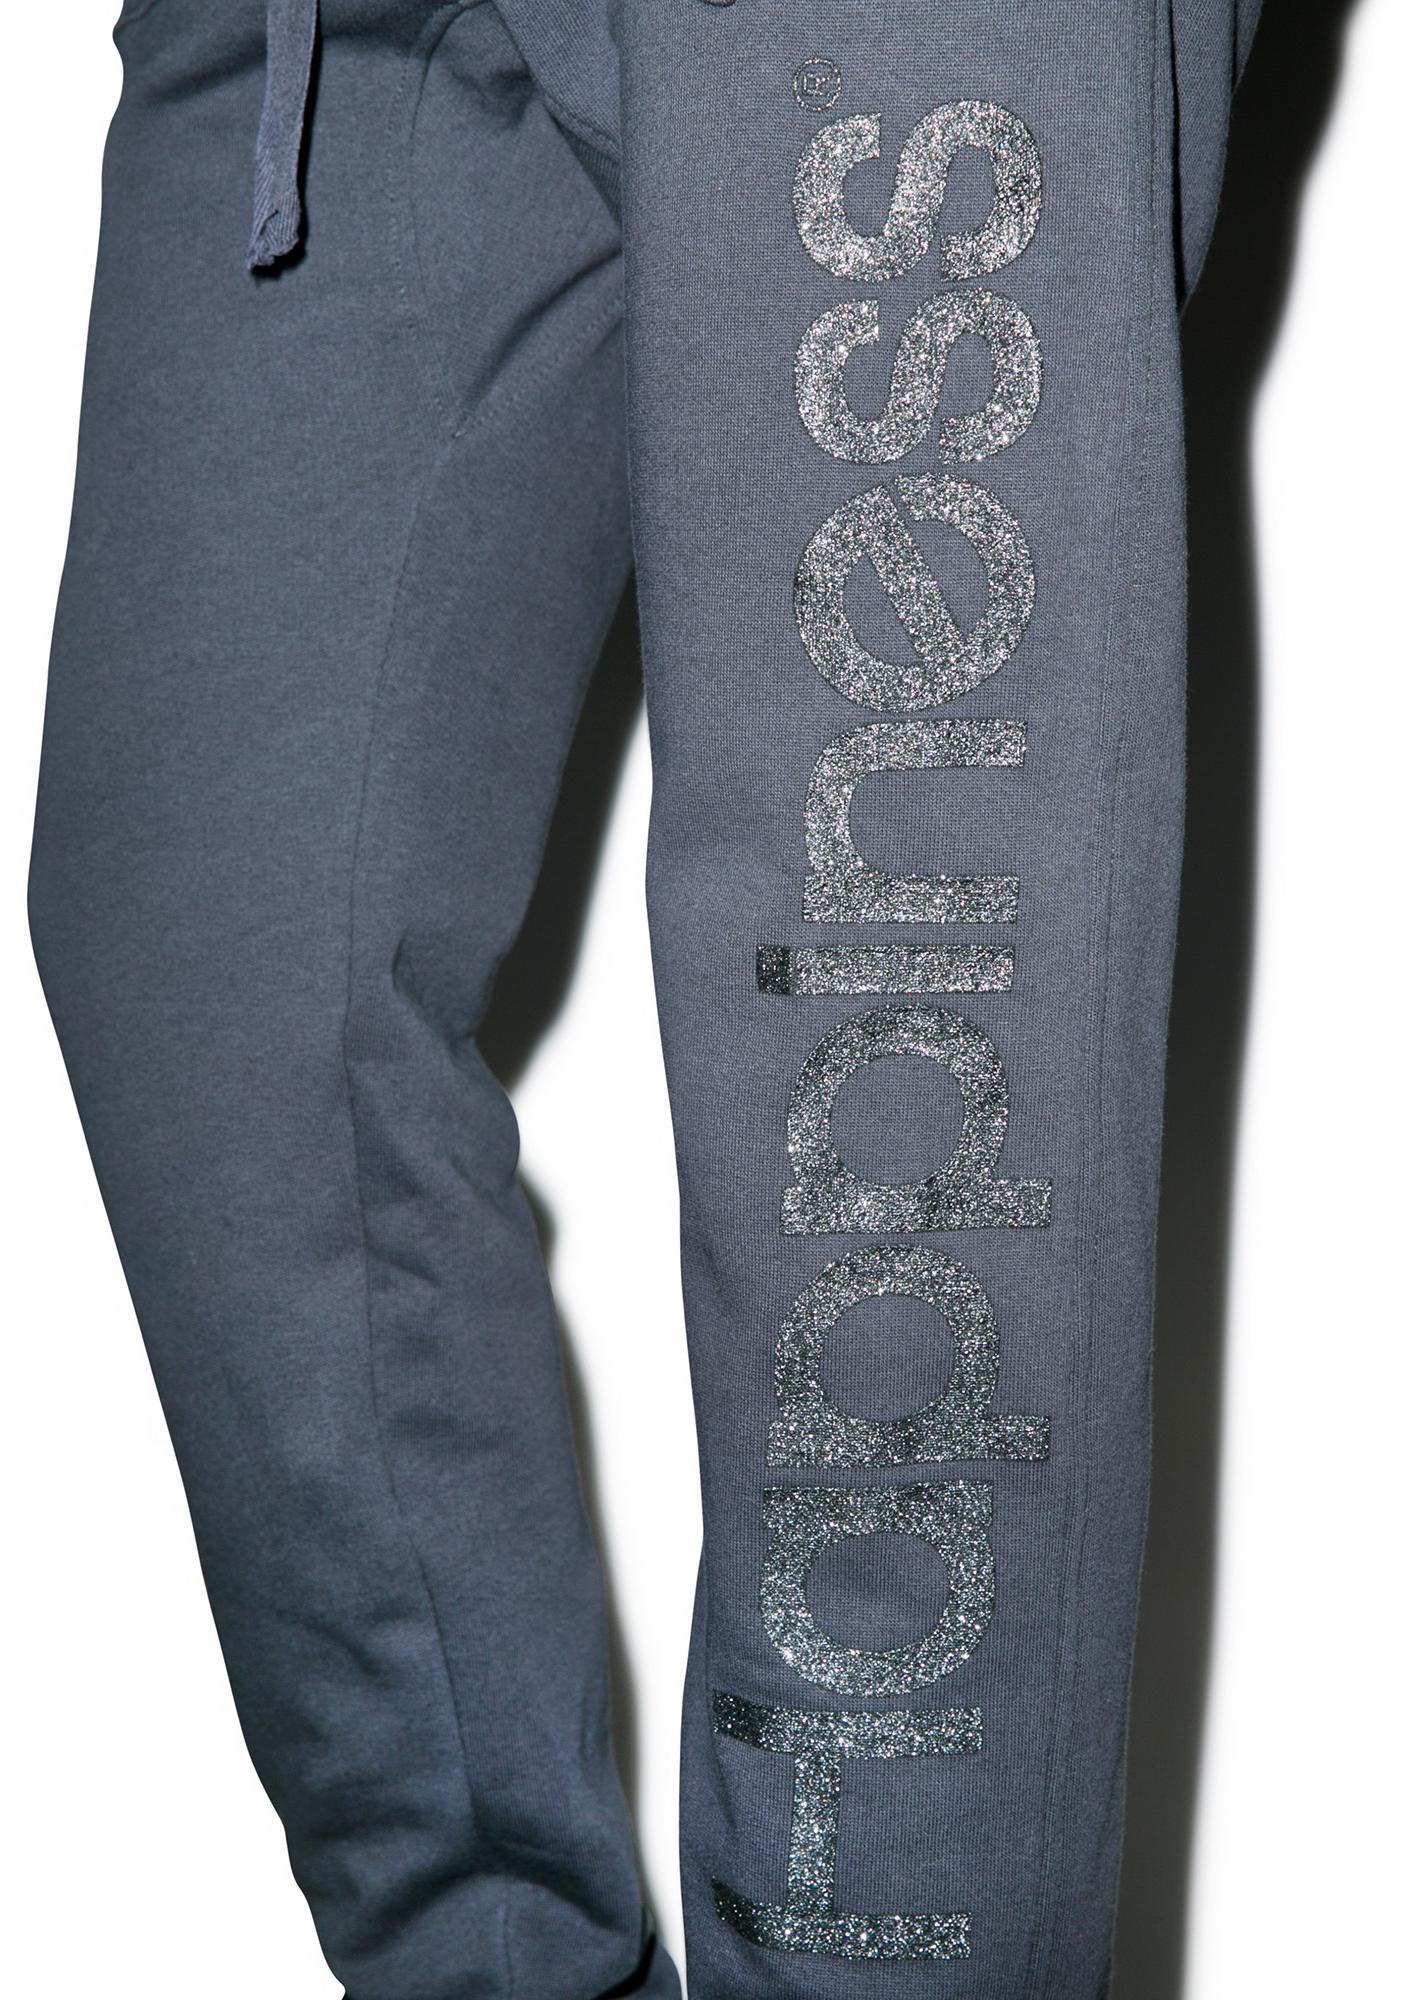 Happiness Happiness Glitter Happiness Sweatpants